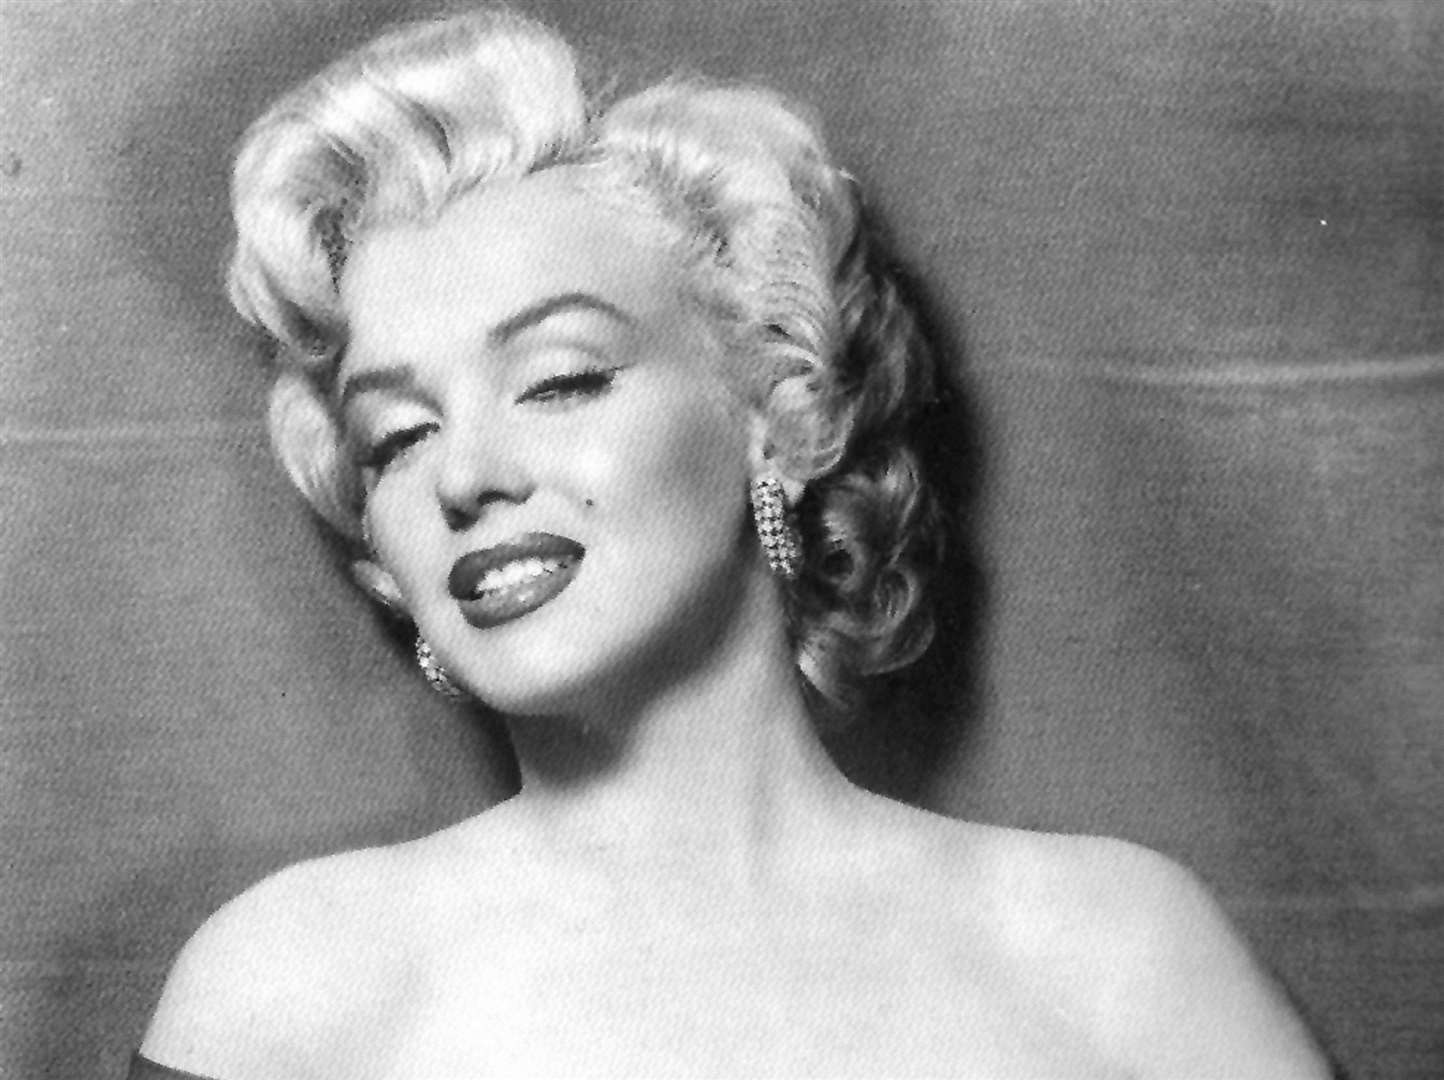 The scam involved a picture of Marilyn Monroe's lips Picture: PA